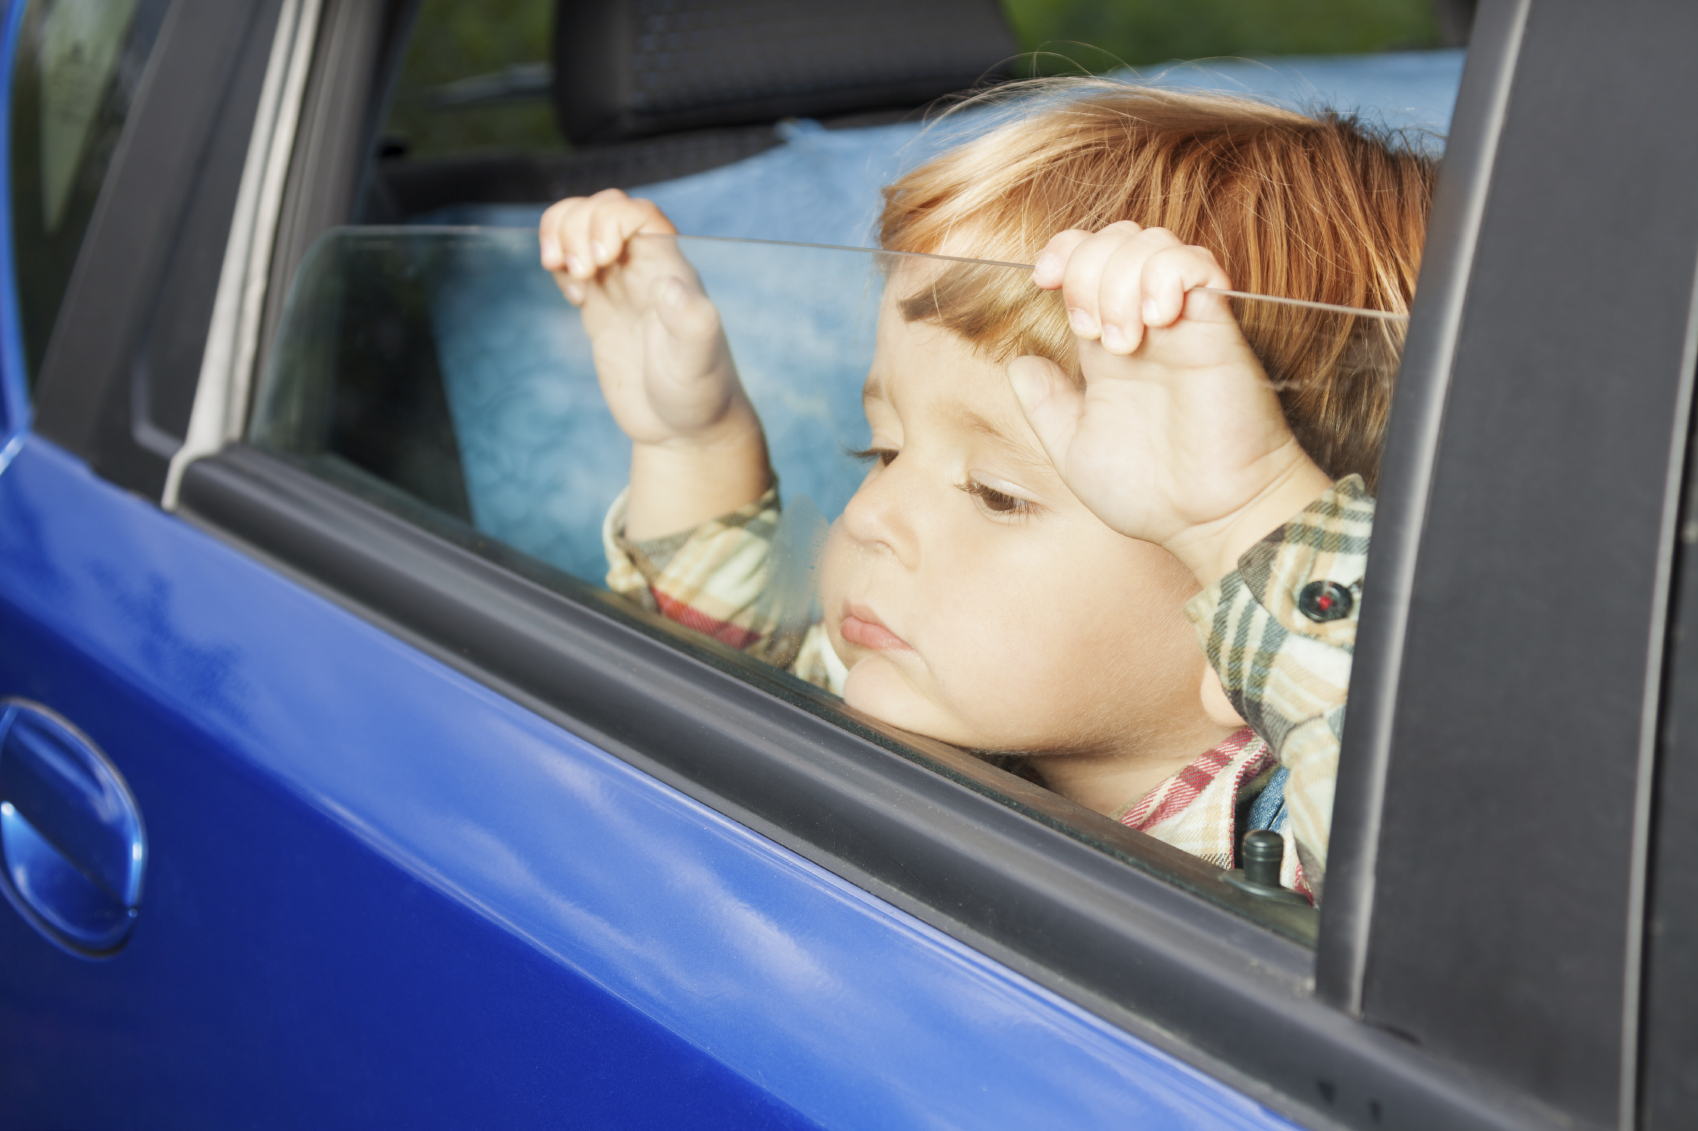 Dwi Penalties With Child Passenger In Dallas Texas